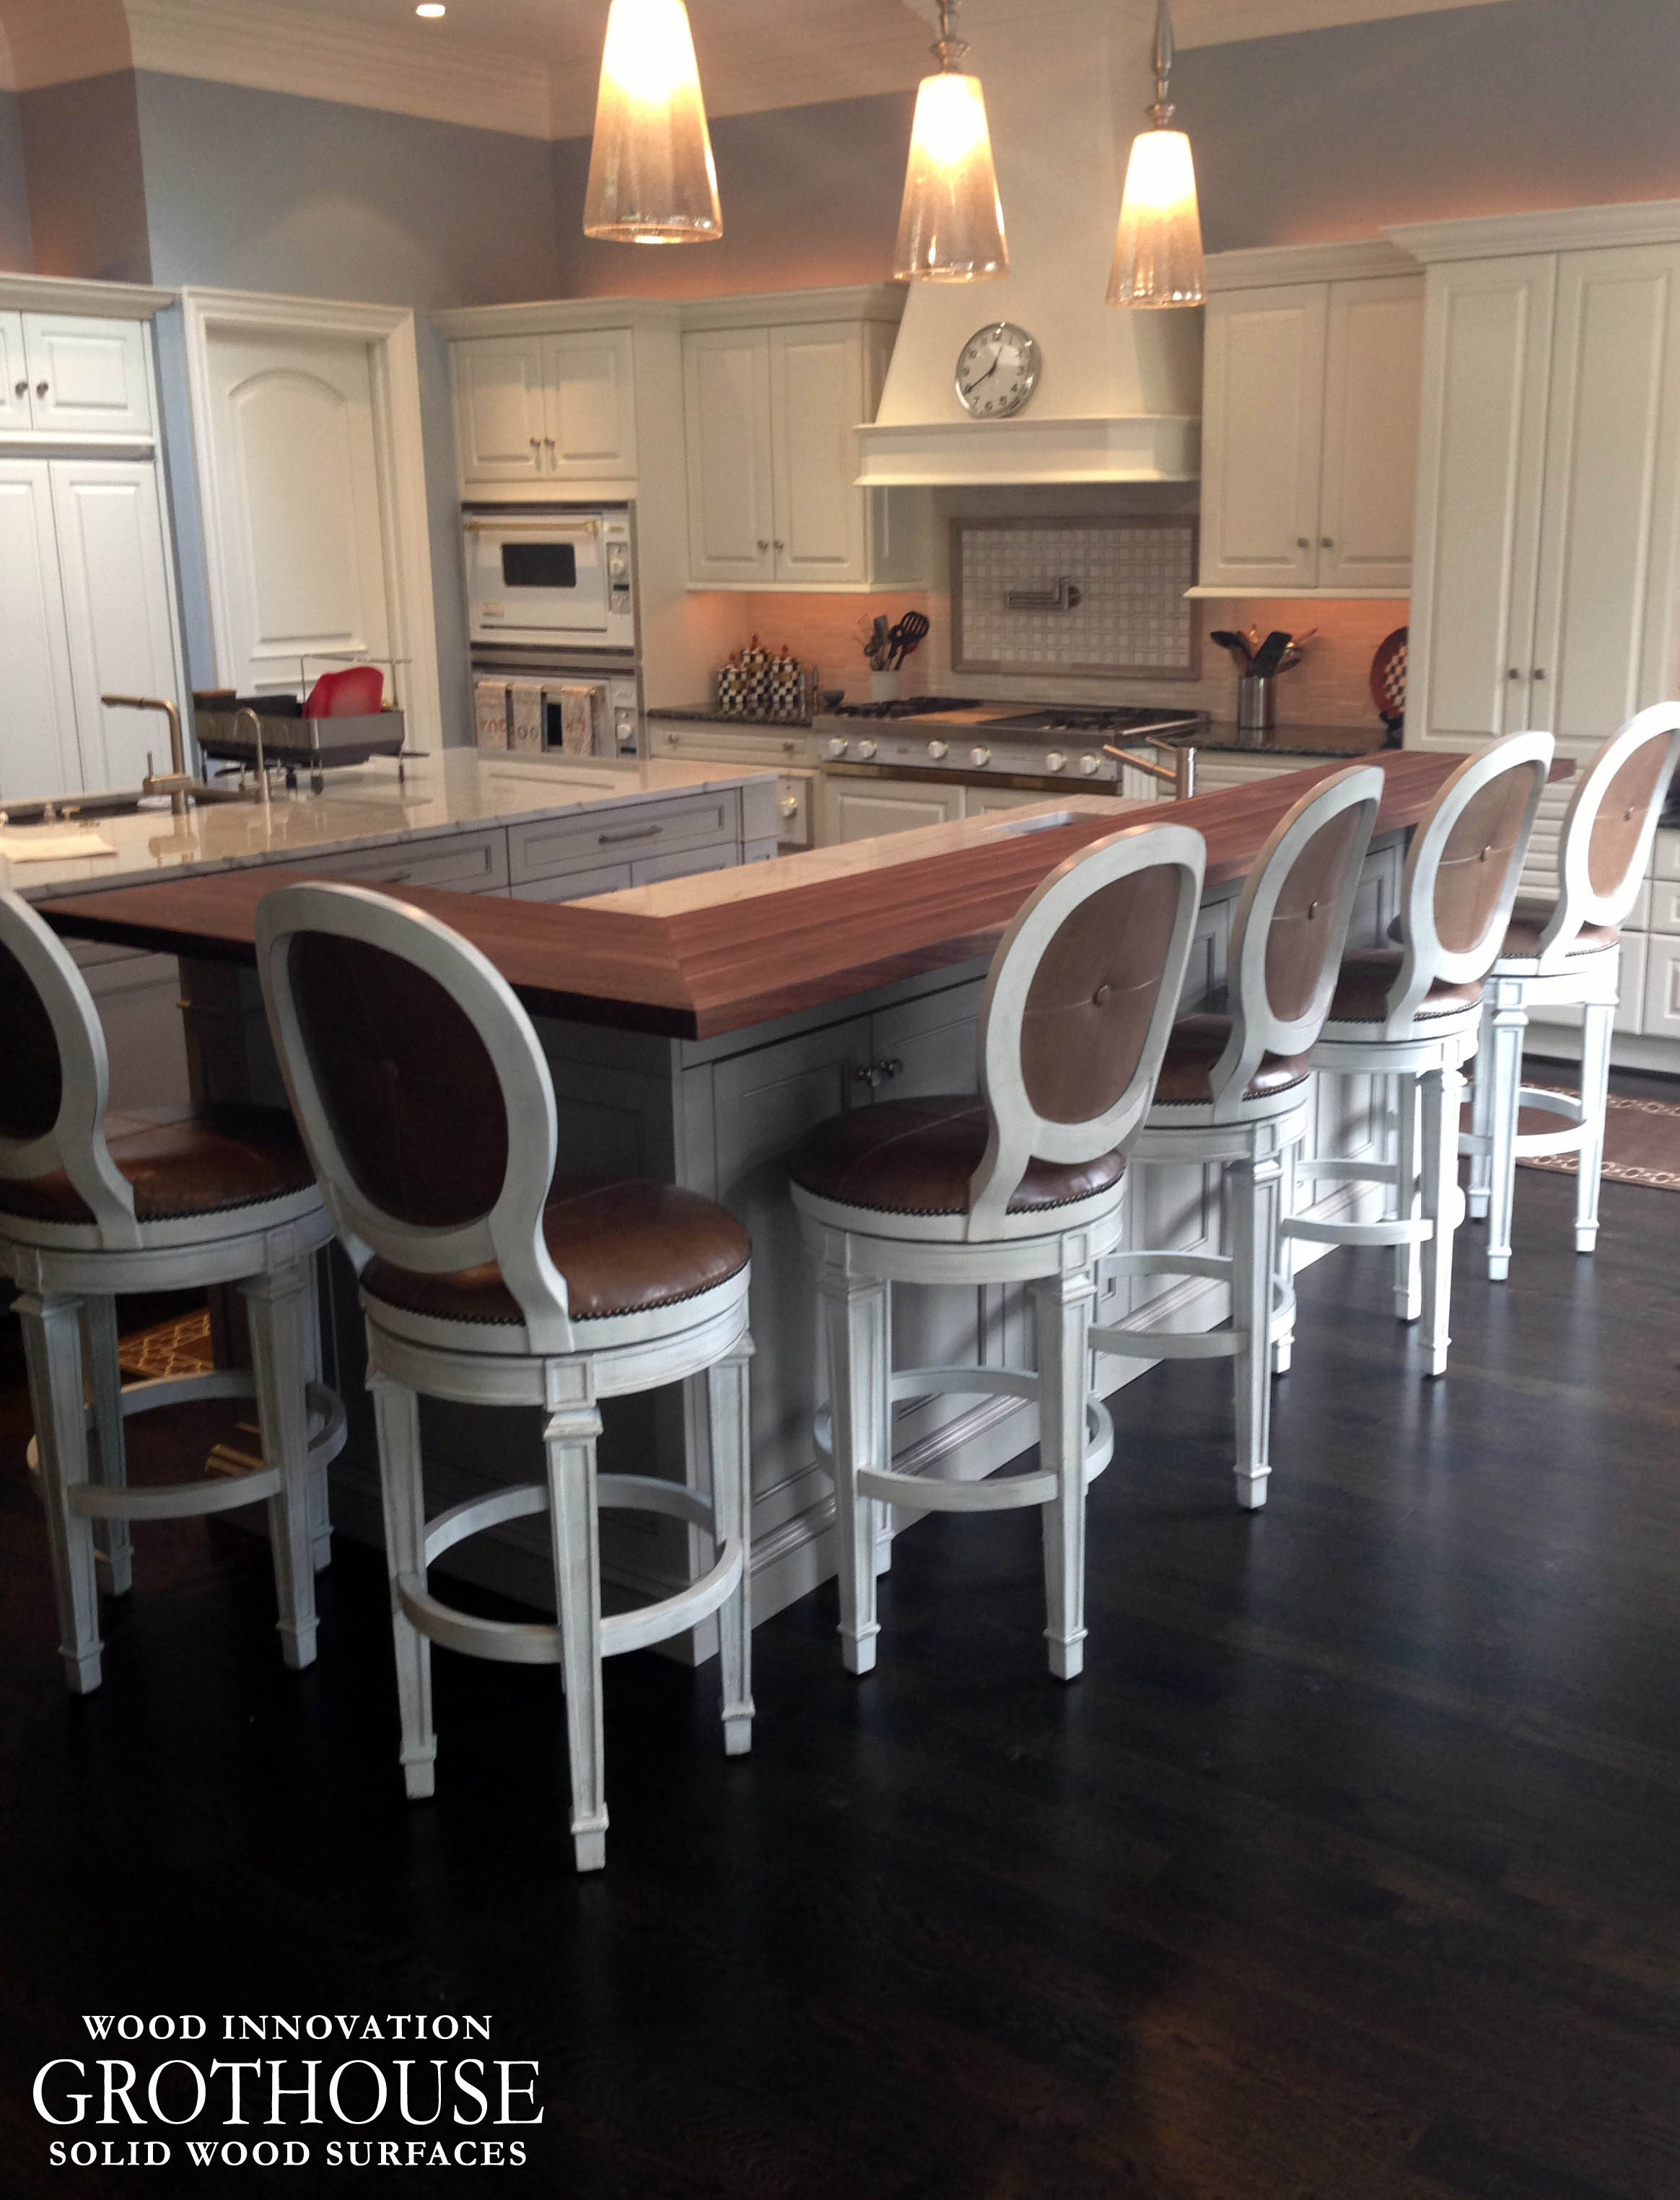 Kitchen Island Bar Ideas Kitchen Island Bar Ideas With Grothouse Wood Surfaces Blog